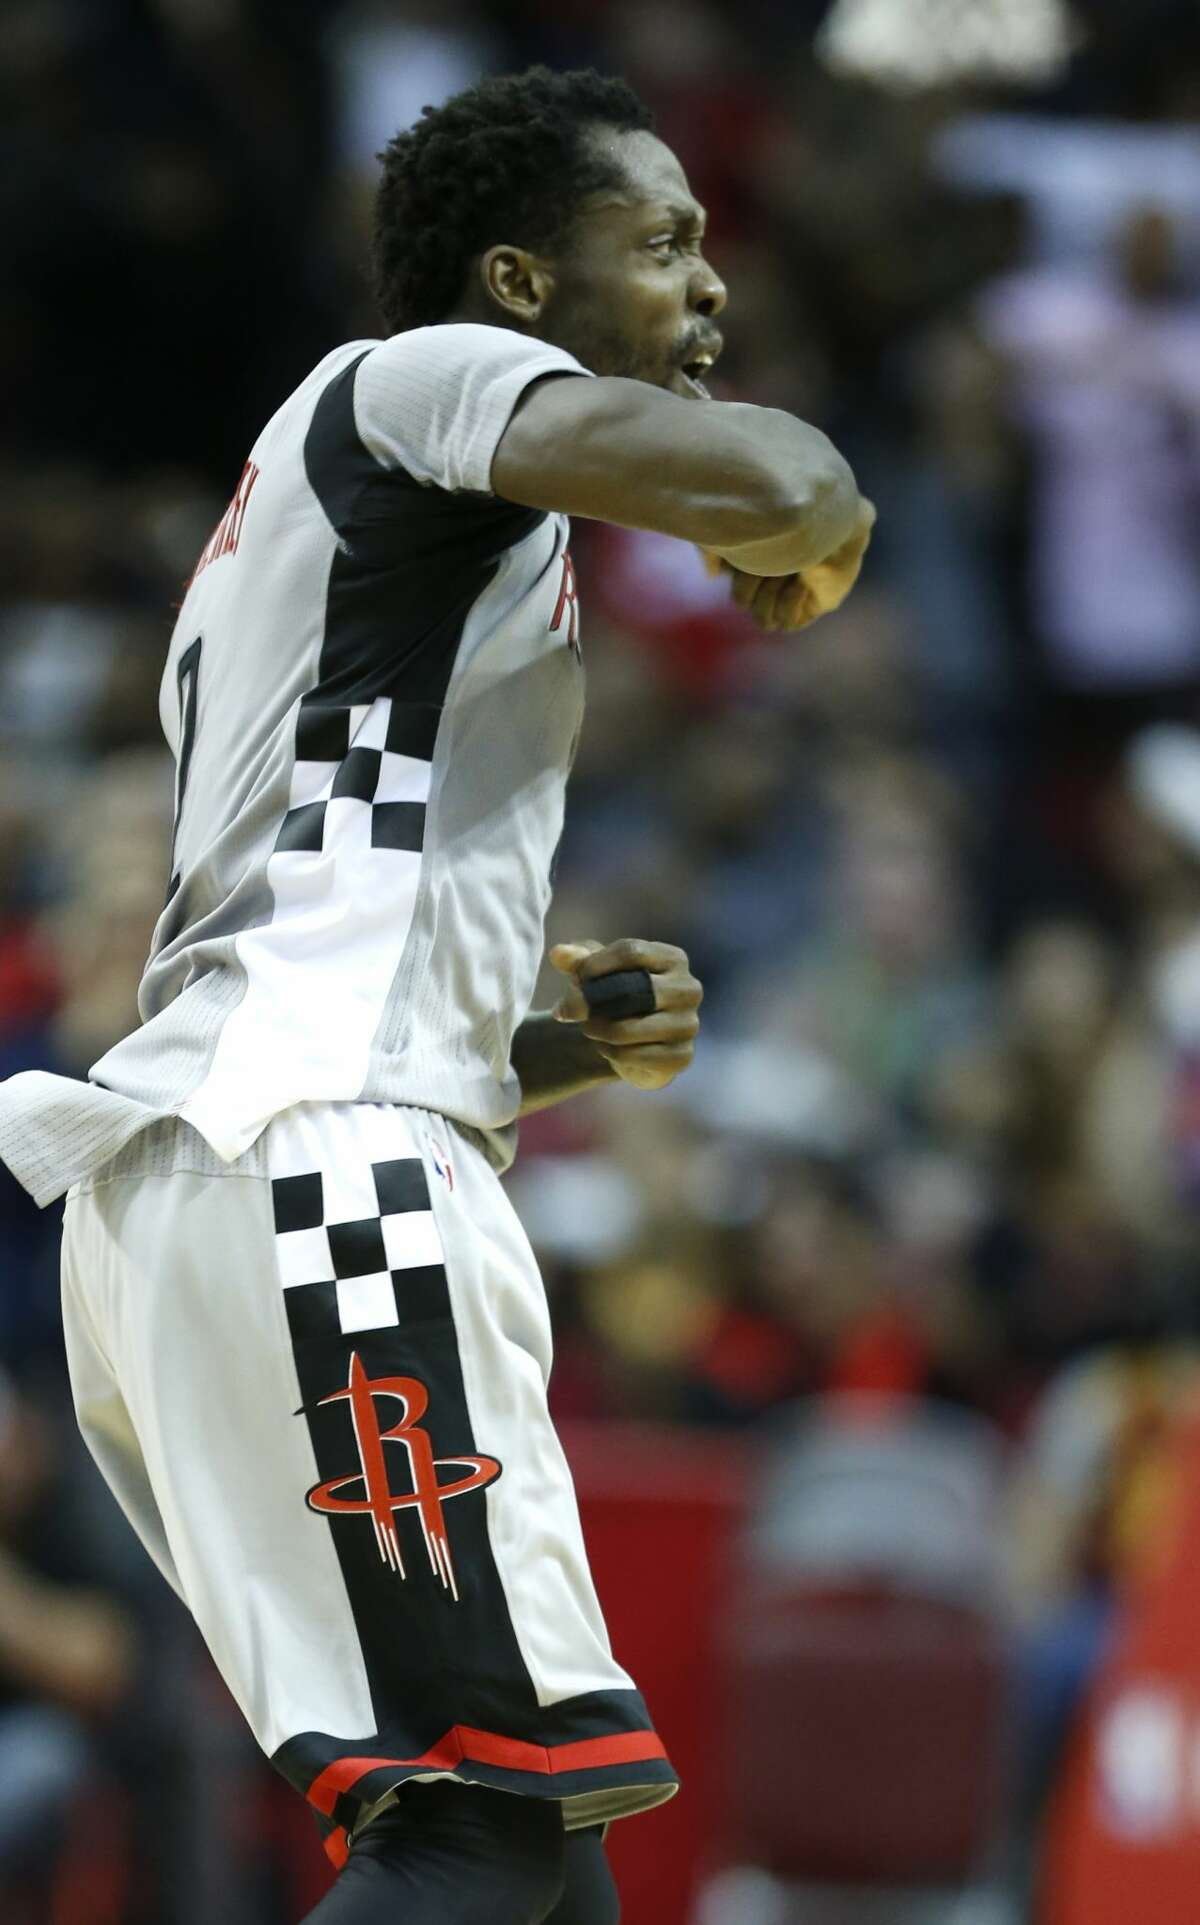 Houston Rockets guard Patrick Beverley reacts after hitting a 3-pointer against the Cleveland Cavaliers during the fourth quarter of an NBA basketball game at Toyota Center on Sunday, March 12, 2017, in Houston. ( Brett Coomer / Houston Chronicle )